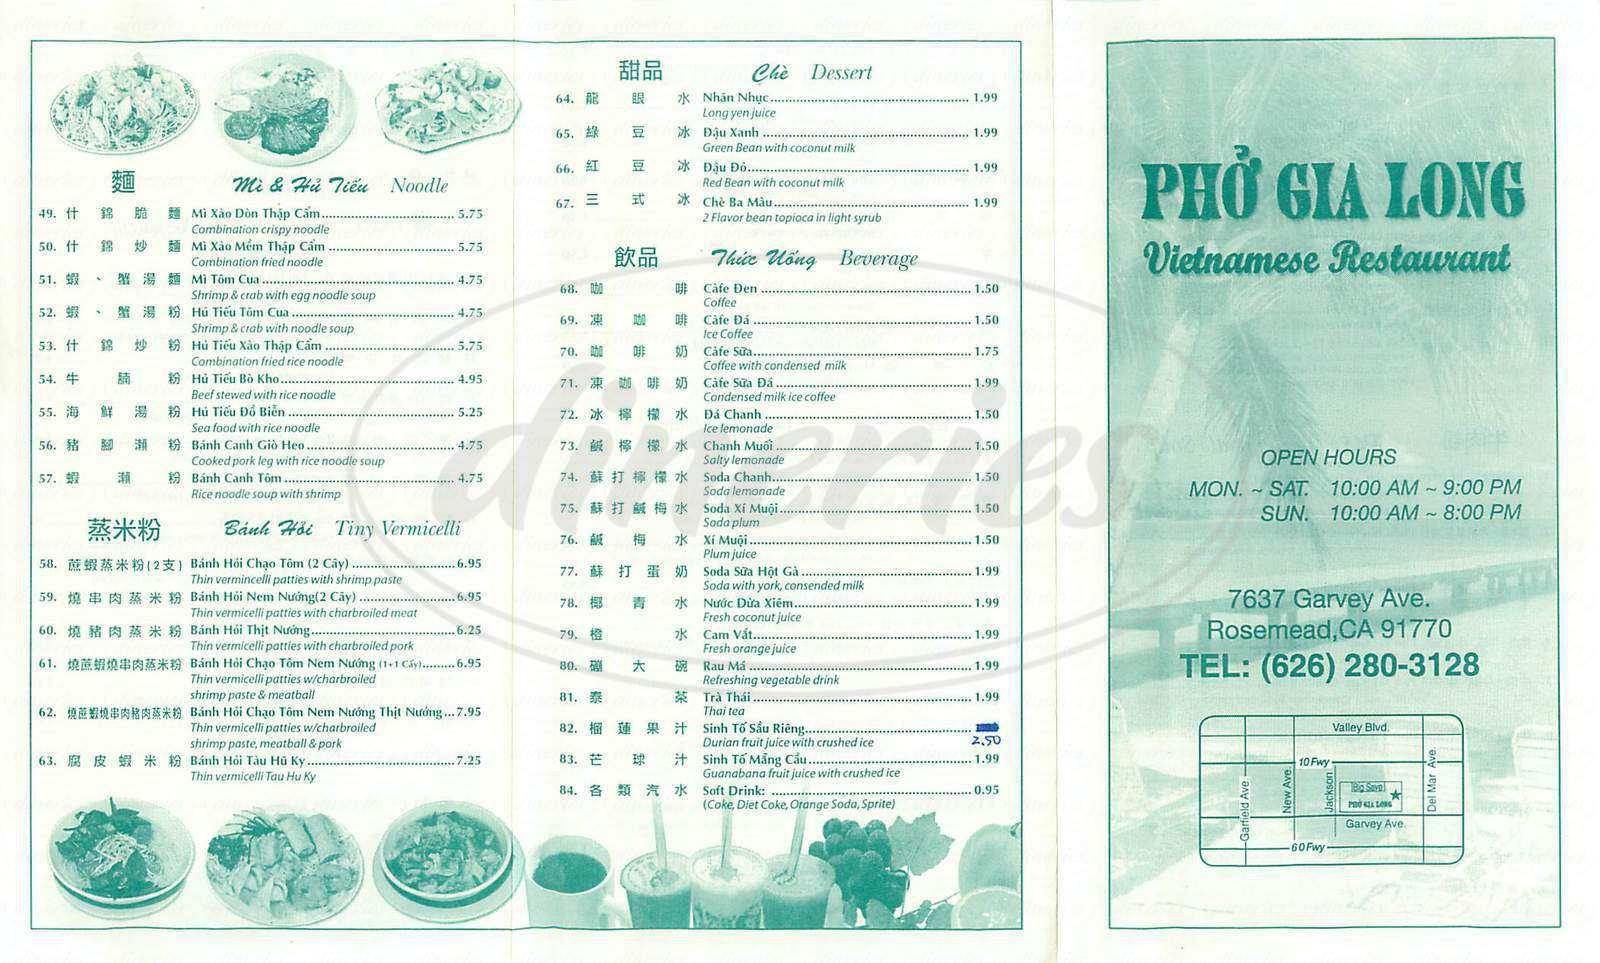 menu for Pho Gia Long